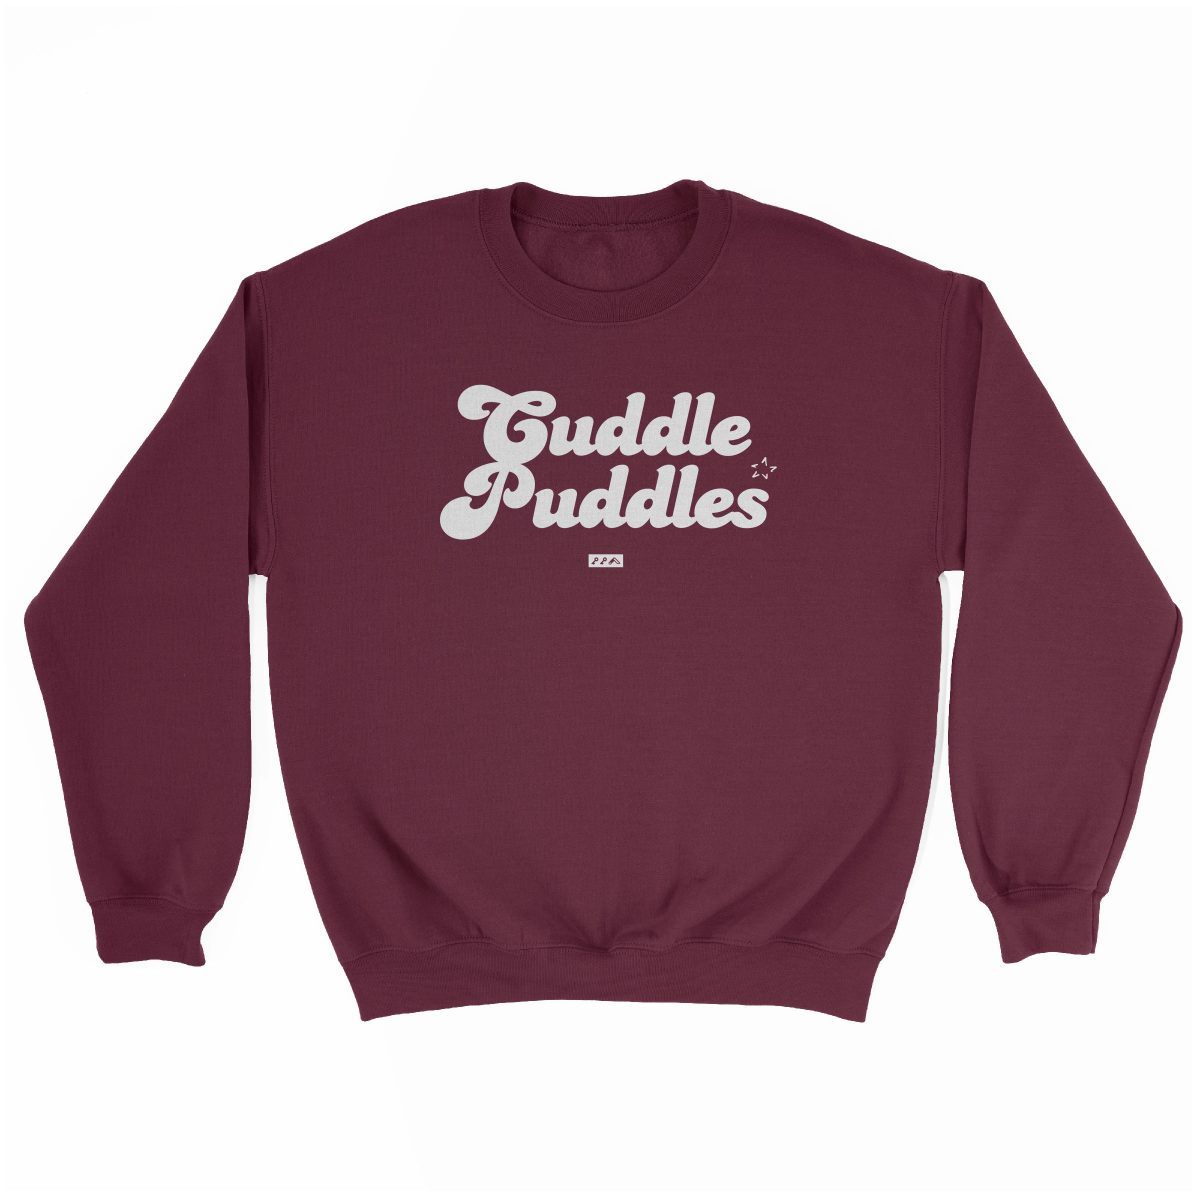 CUDDLE PUDDLE PARTY comfy sweatshirt in maroon at kikicutt.com